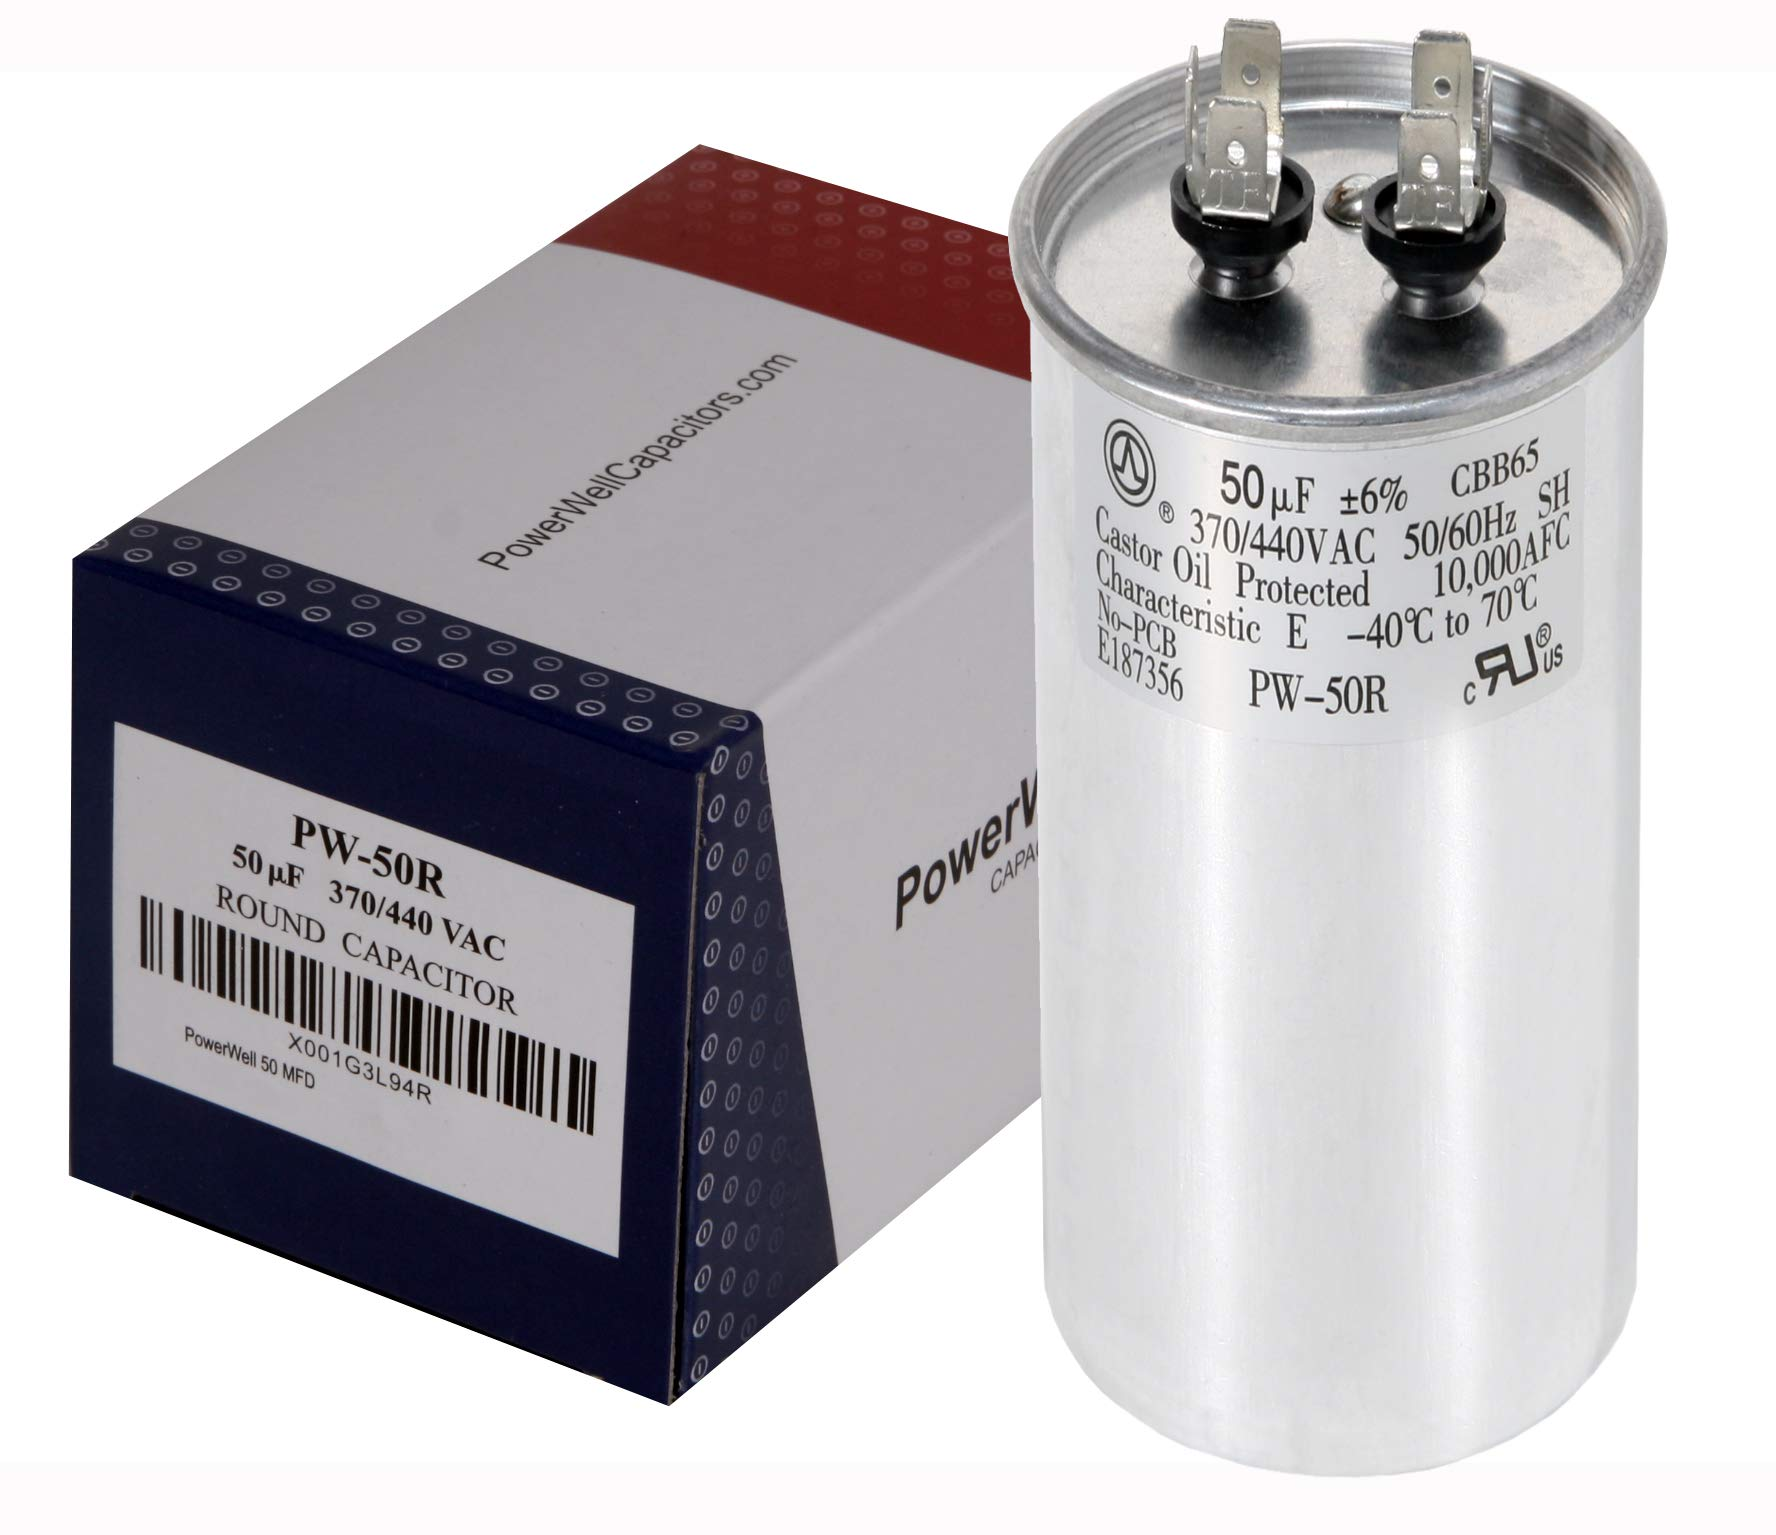 PowerWell 50 MFD uf Motor Run Round Capacitor 370 V VAC or 440 Volt 50 Micro Farad PW-50/R with Size 5-1/2″ Tall and 2″ Wide